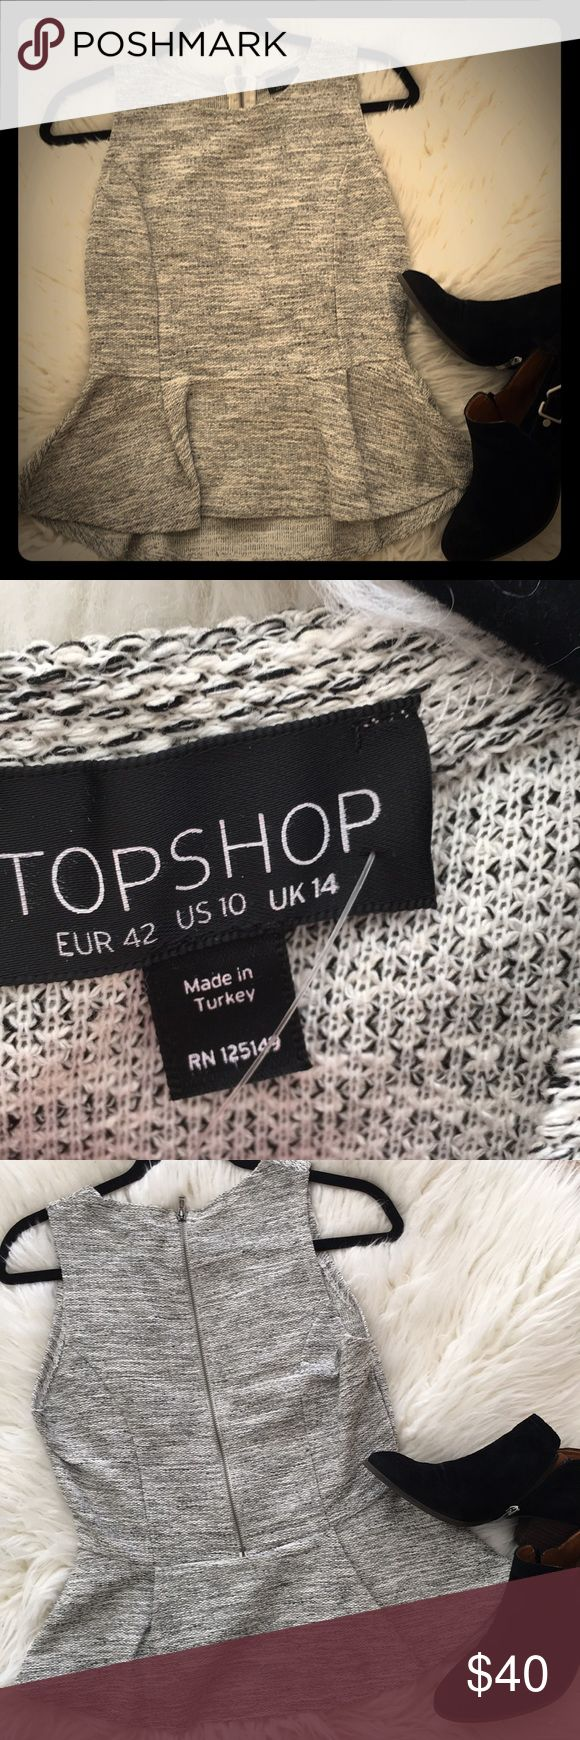 NWT Top Shop Black & White Peplum Top Sz 10. NWT Top Shop Black & White Peplum Top with zipper detail in the back. Purchased from Nordstroms and has original tag. Sz 10. Topshop Tops Blouses